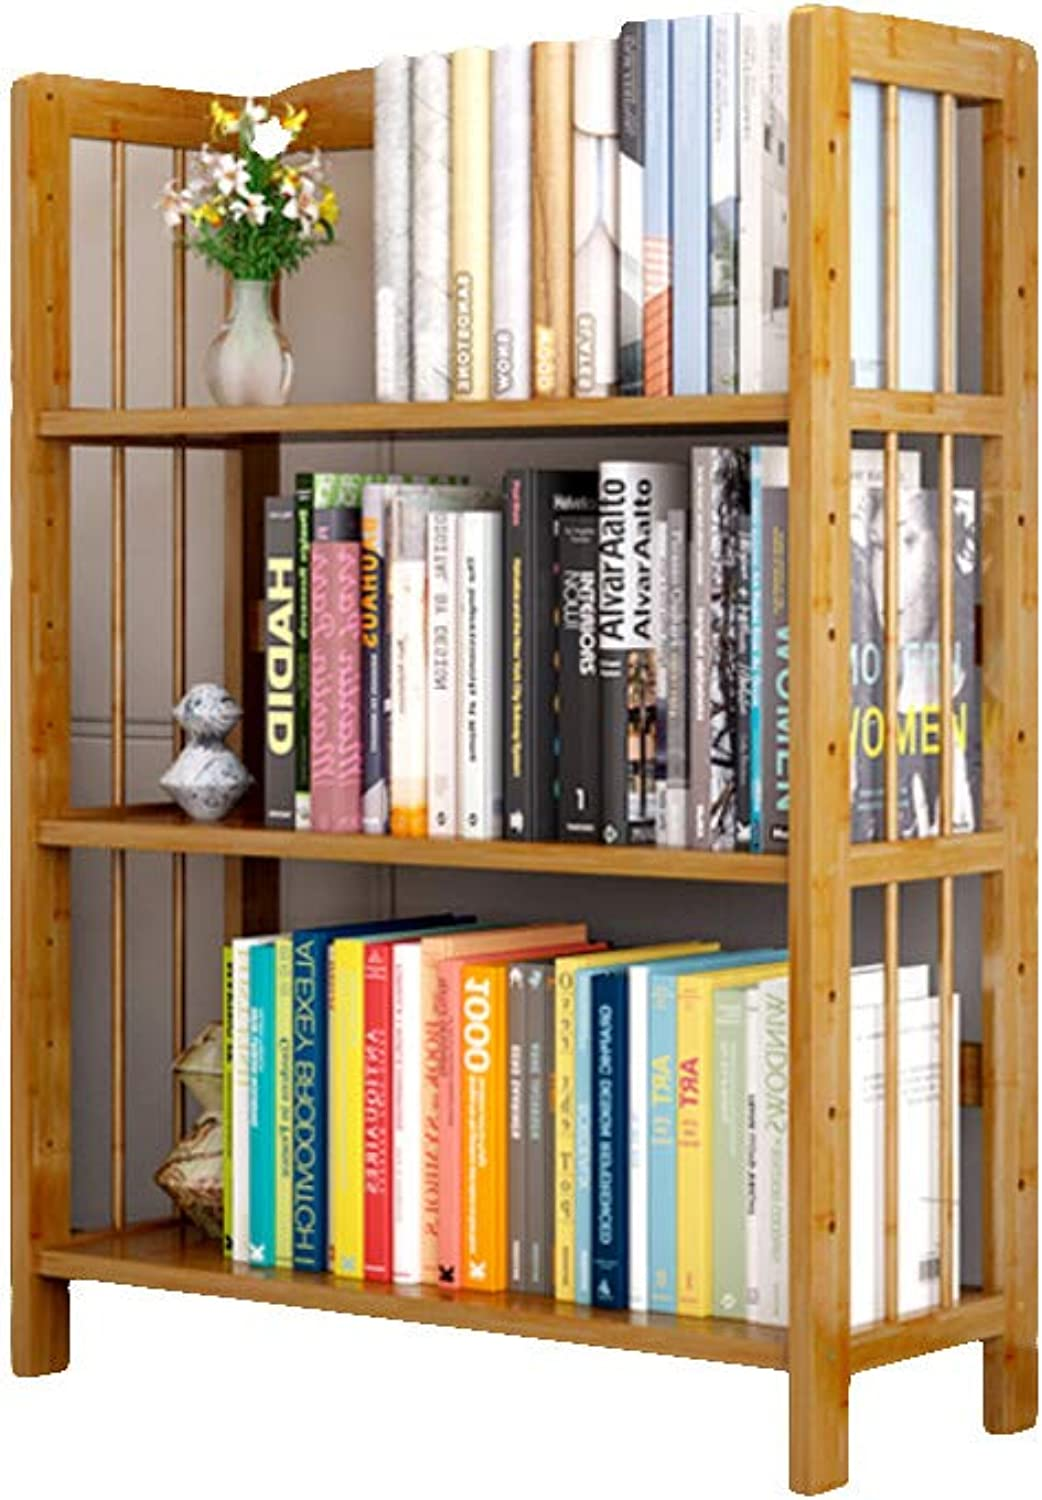 Fashion Simple Bamboo Bookshelf, Multi-Layer Open-Plan Shelves for Placing Office Supplies Documents Books Plants in Home Kitchen-A 50X26X98cm